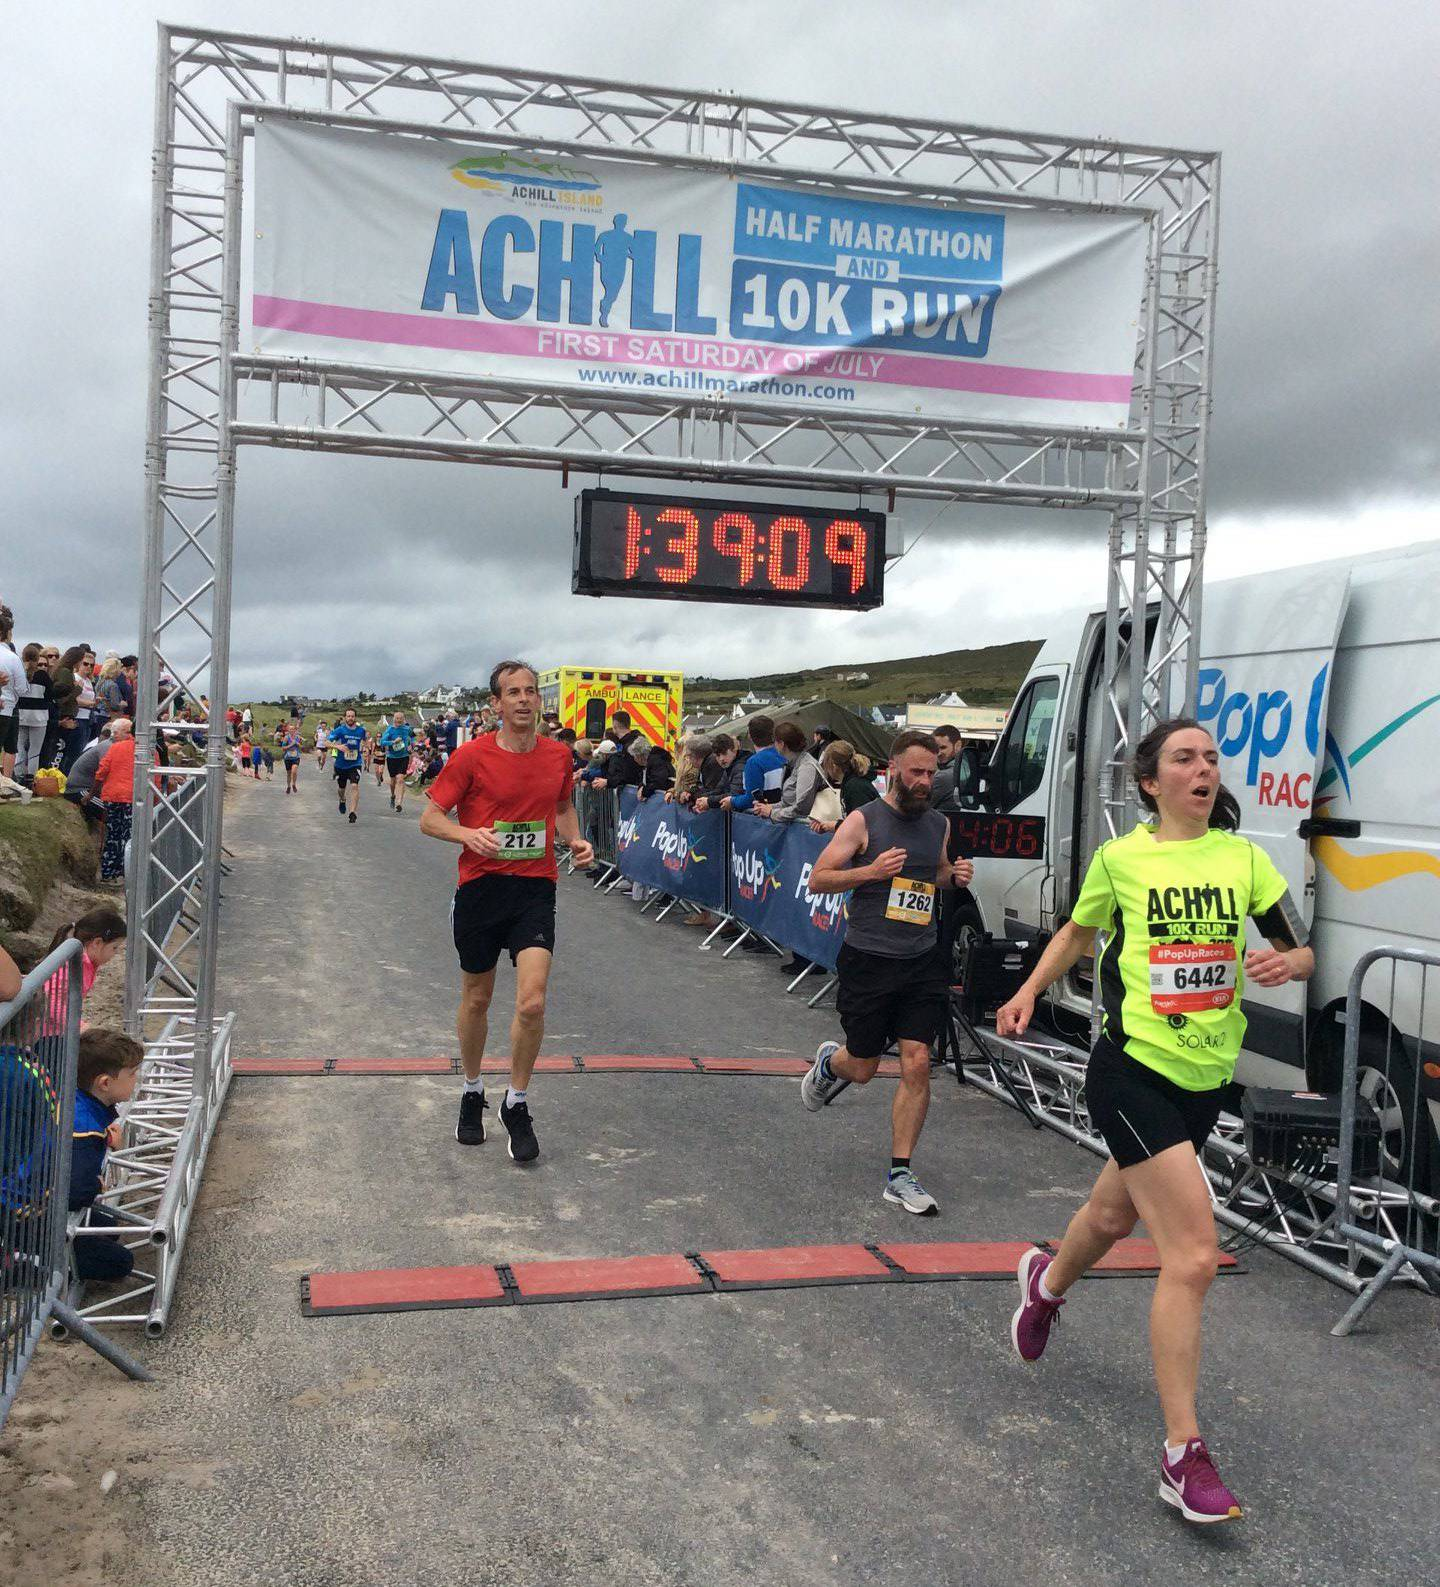 Me crossing the Achill half marathon finish line